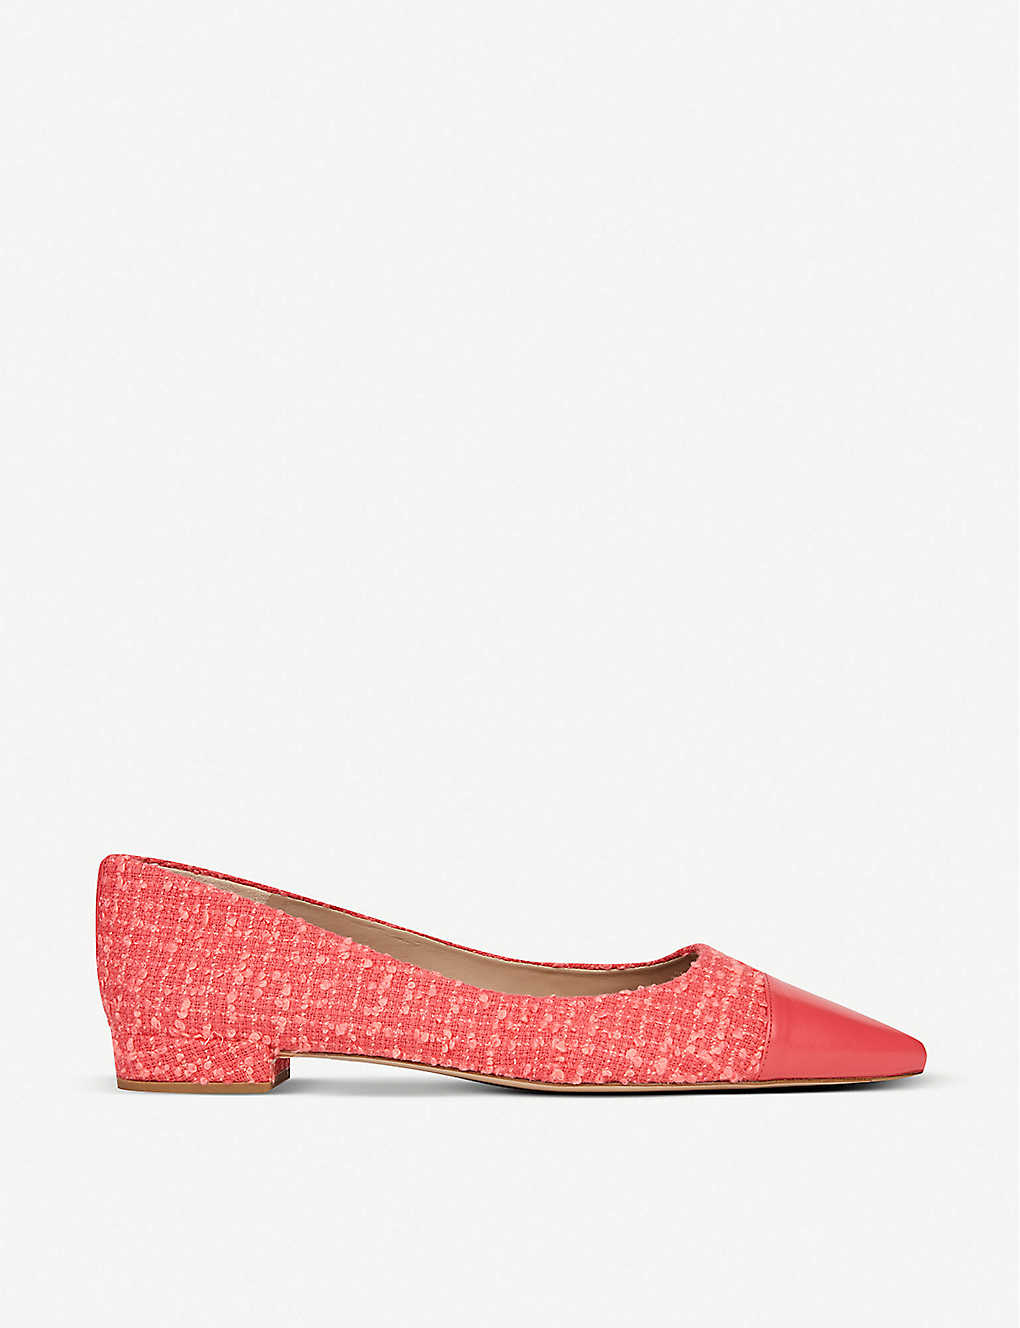 LK BENNETT: Perth toe-cap tweed and leather ballet flats